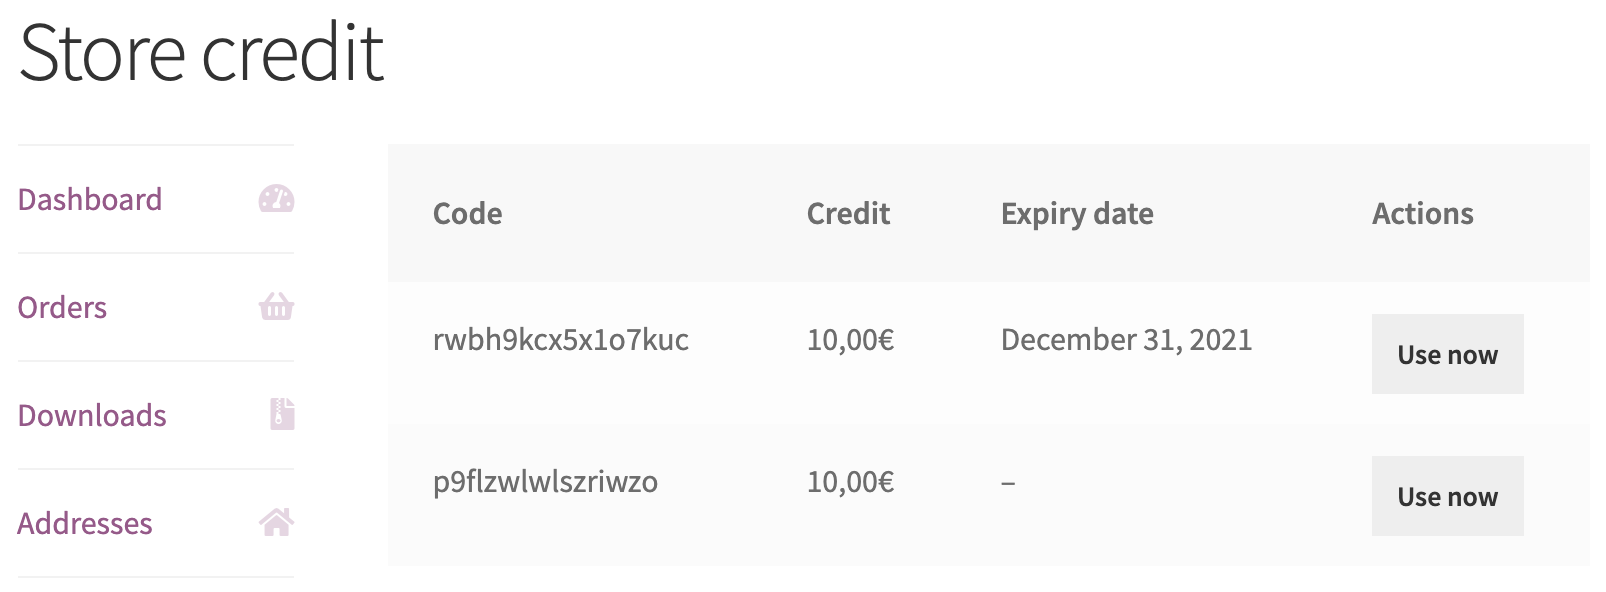 List with the available Store Credit coupons